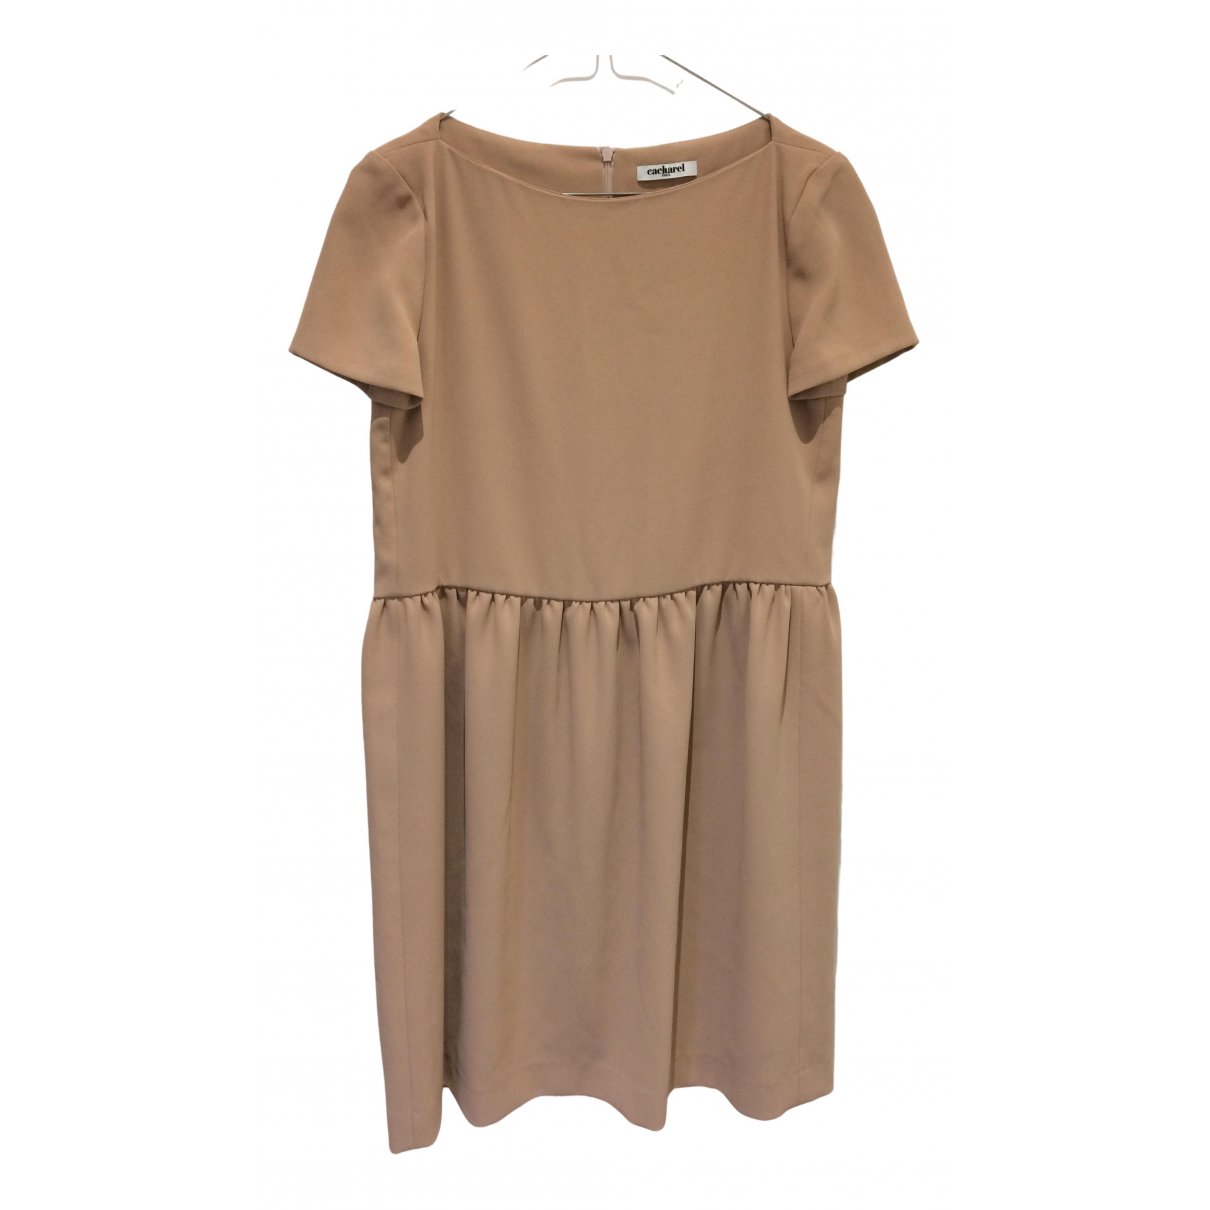 Cacharel \N Kleid in  Beige Viskose